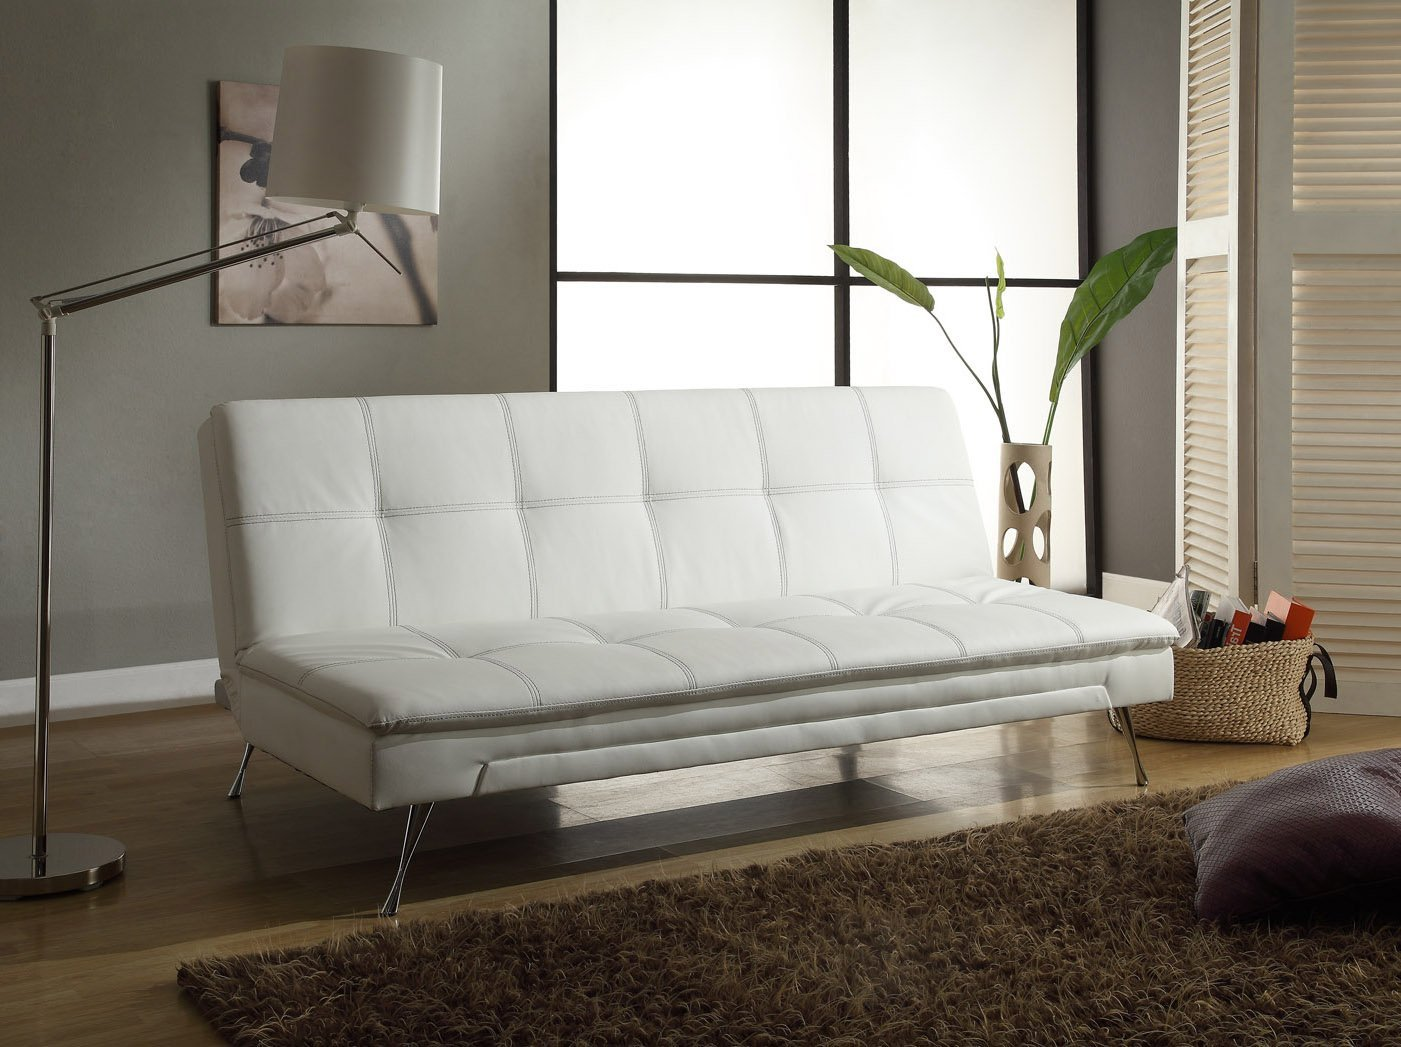 Buy Cheap Sofa: Cheap Sectional Sofa